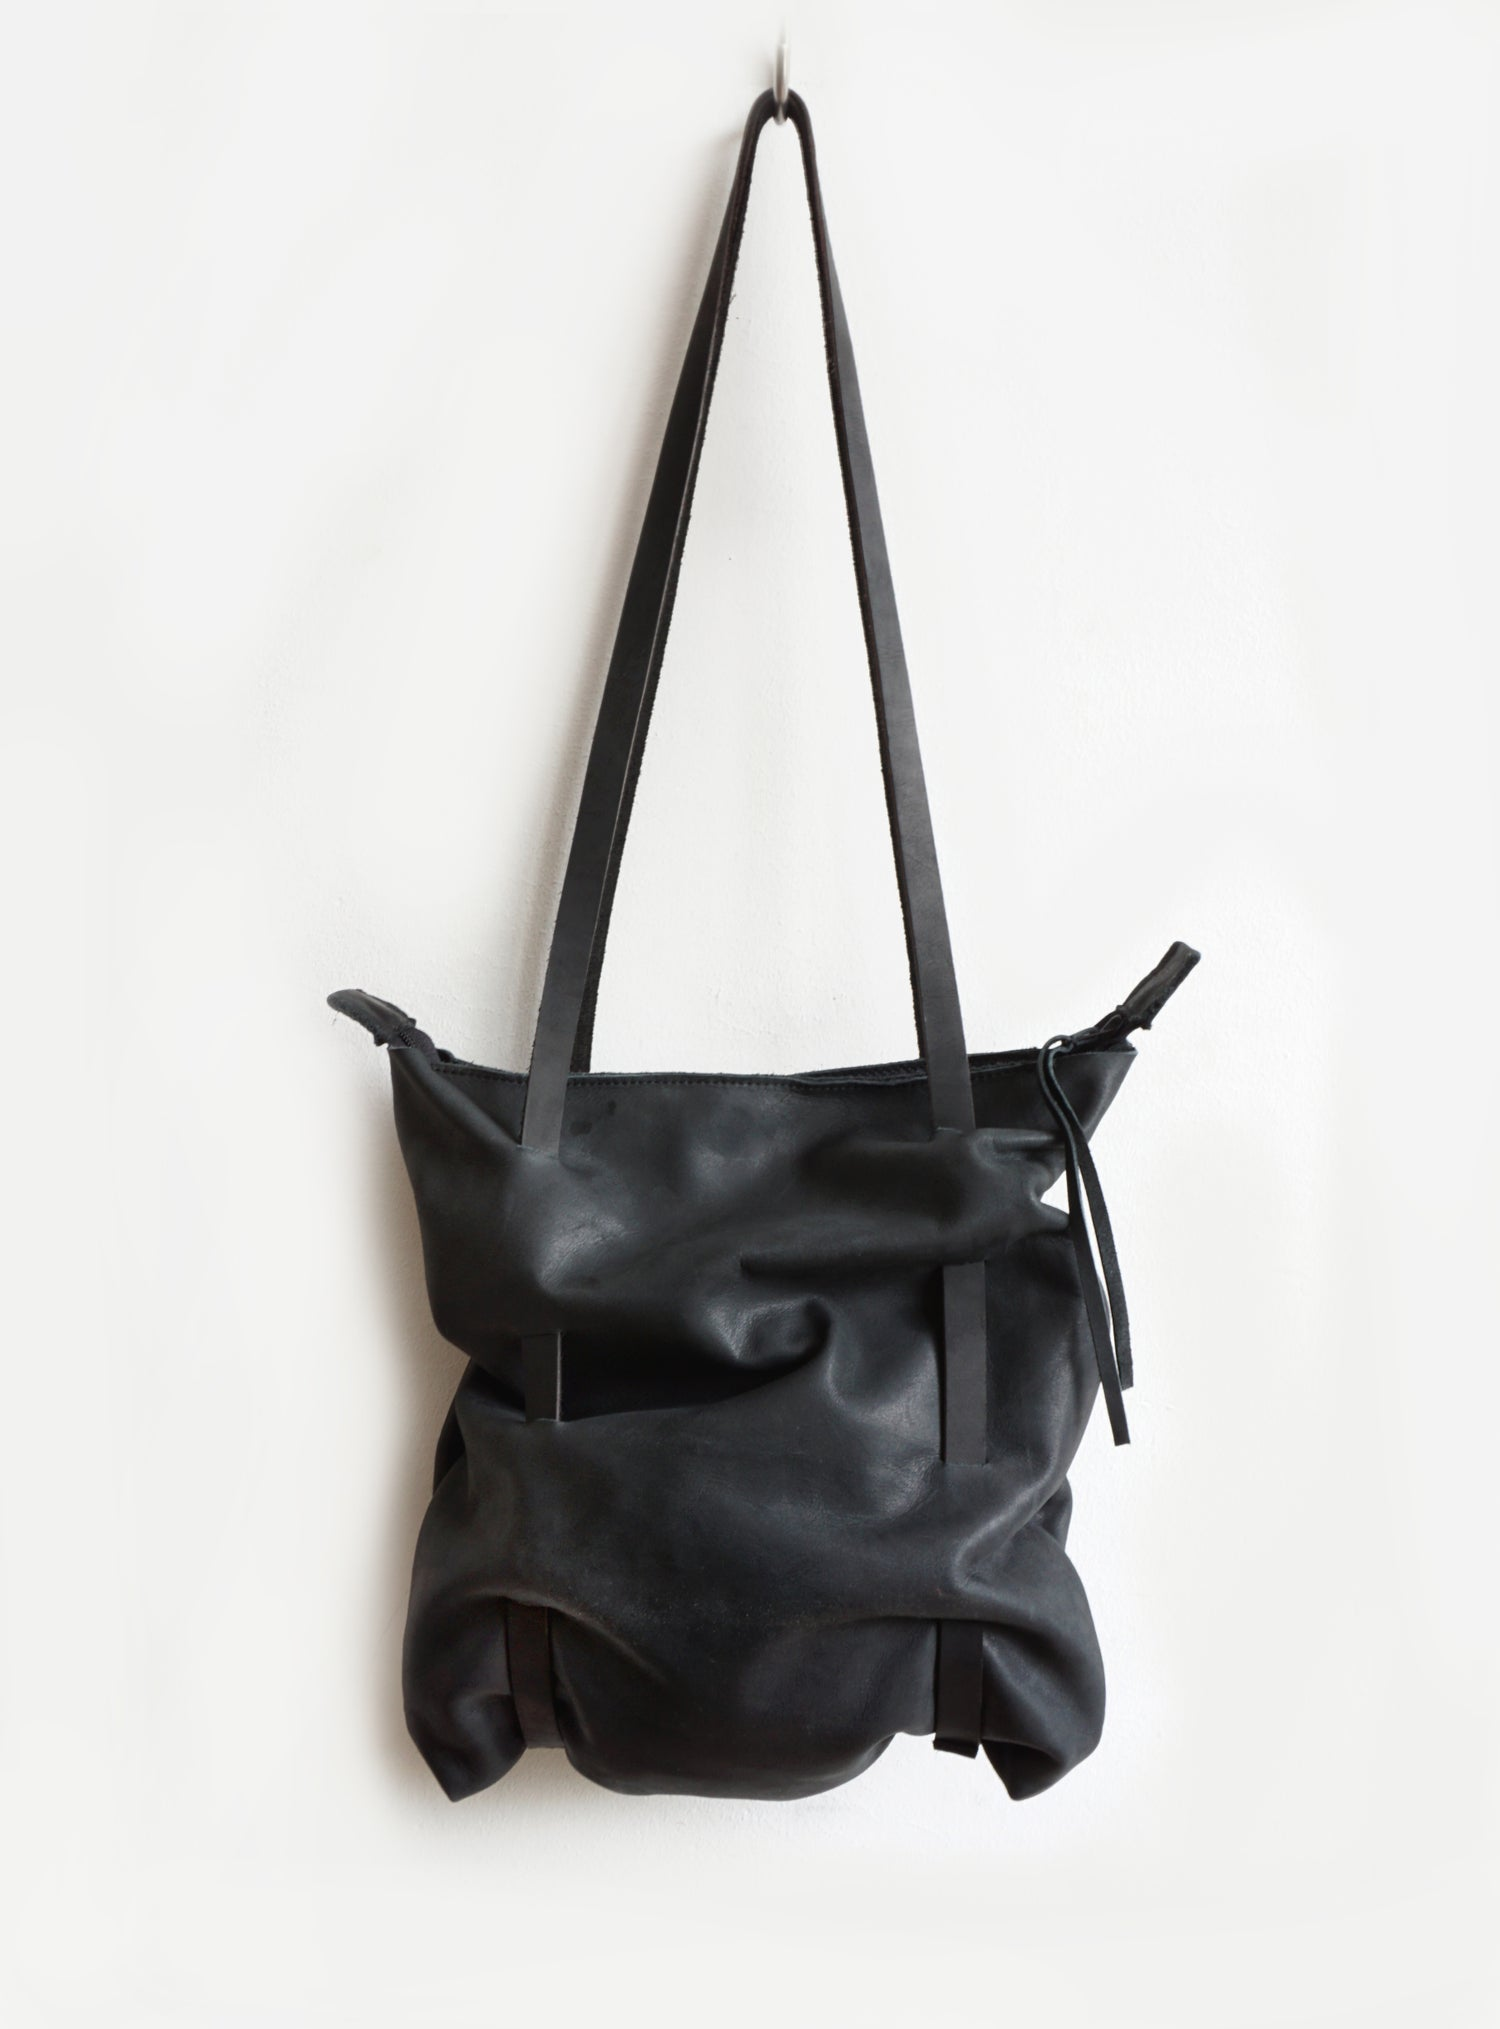 Image of Distinctive Top Zipperd Black Leather Bag, Eco Leather Crunch Bag